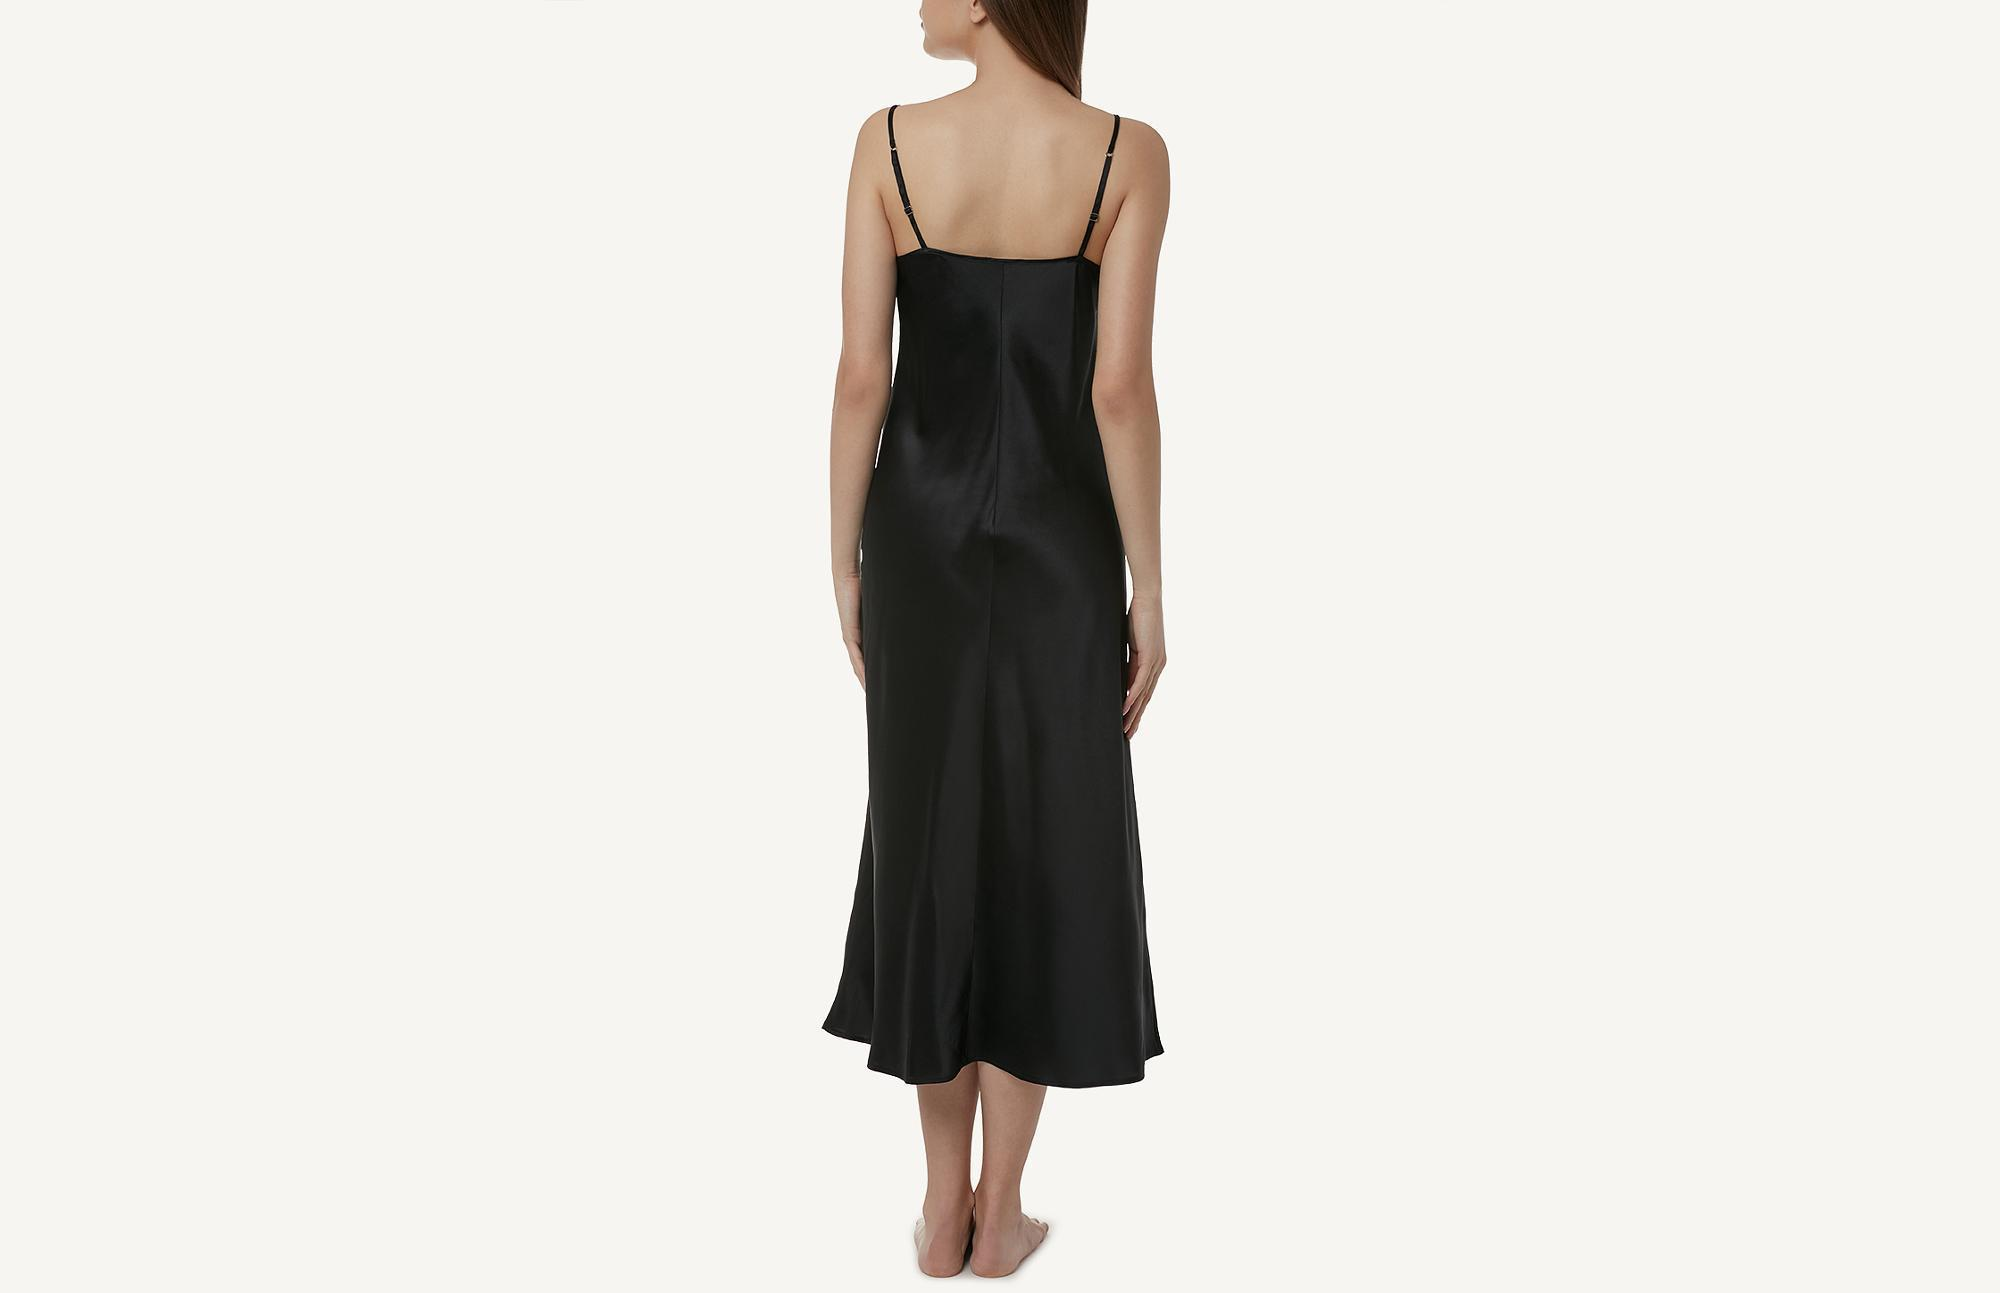 dbb109bae463 Intimissimi Midi-length Slip In Silk in Black - Lyst